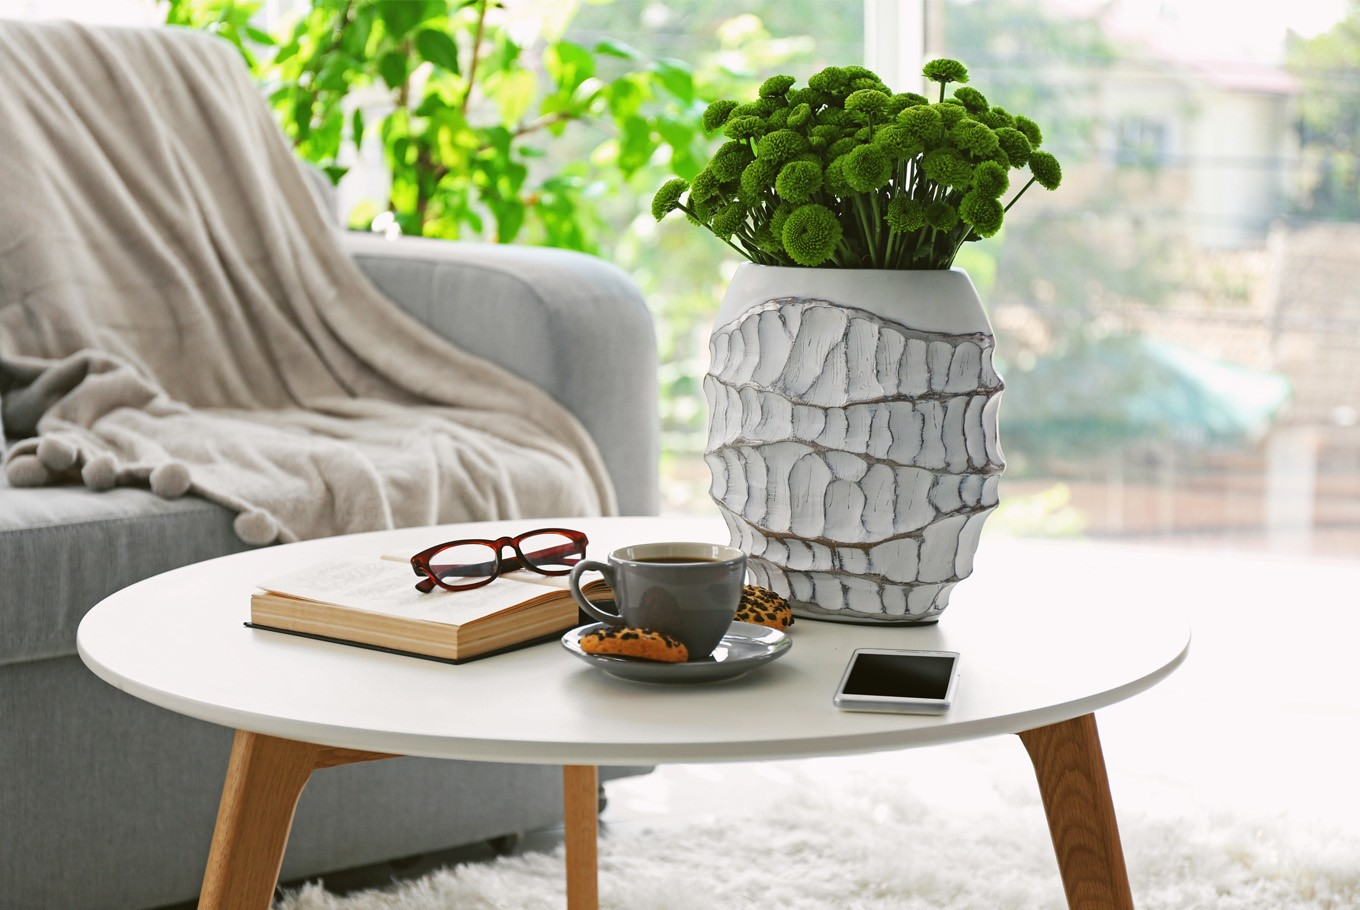 Insightful Coffee Table Books You Should Have At Home